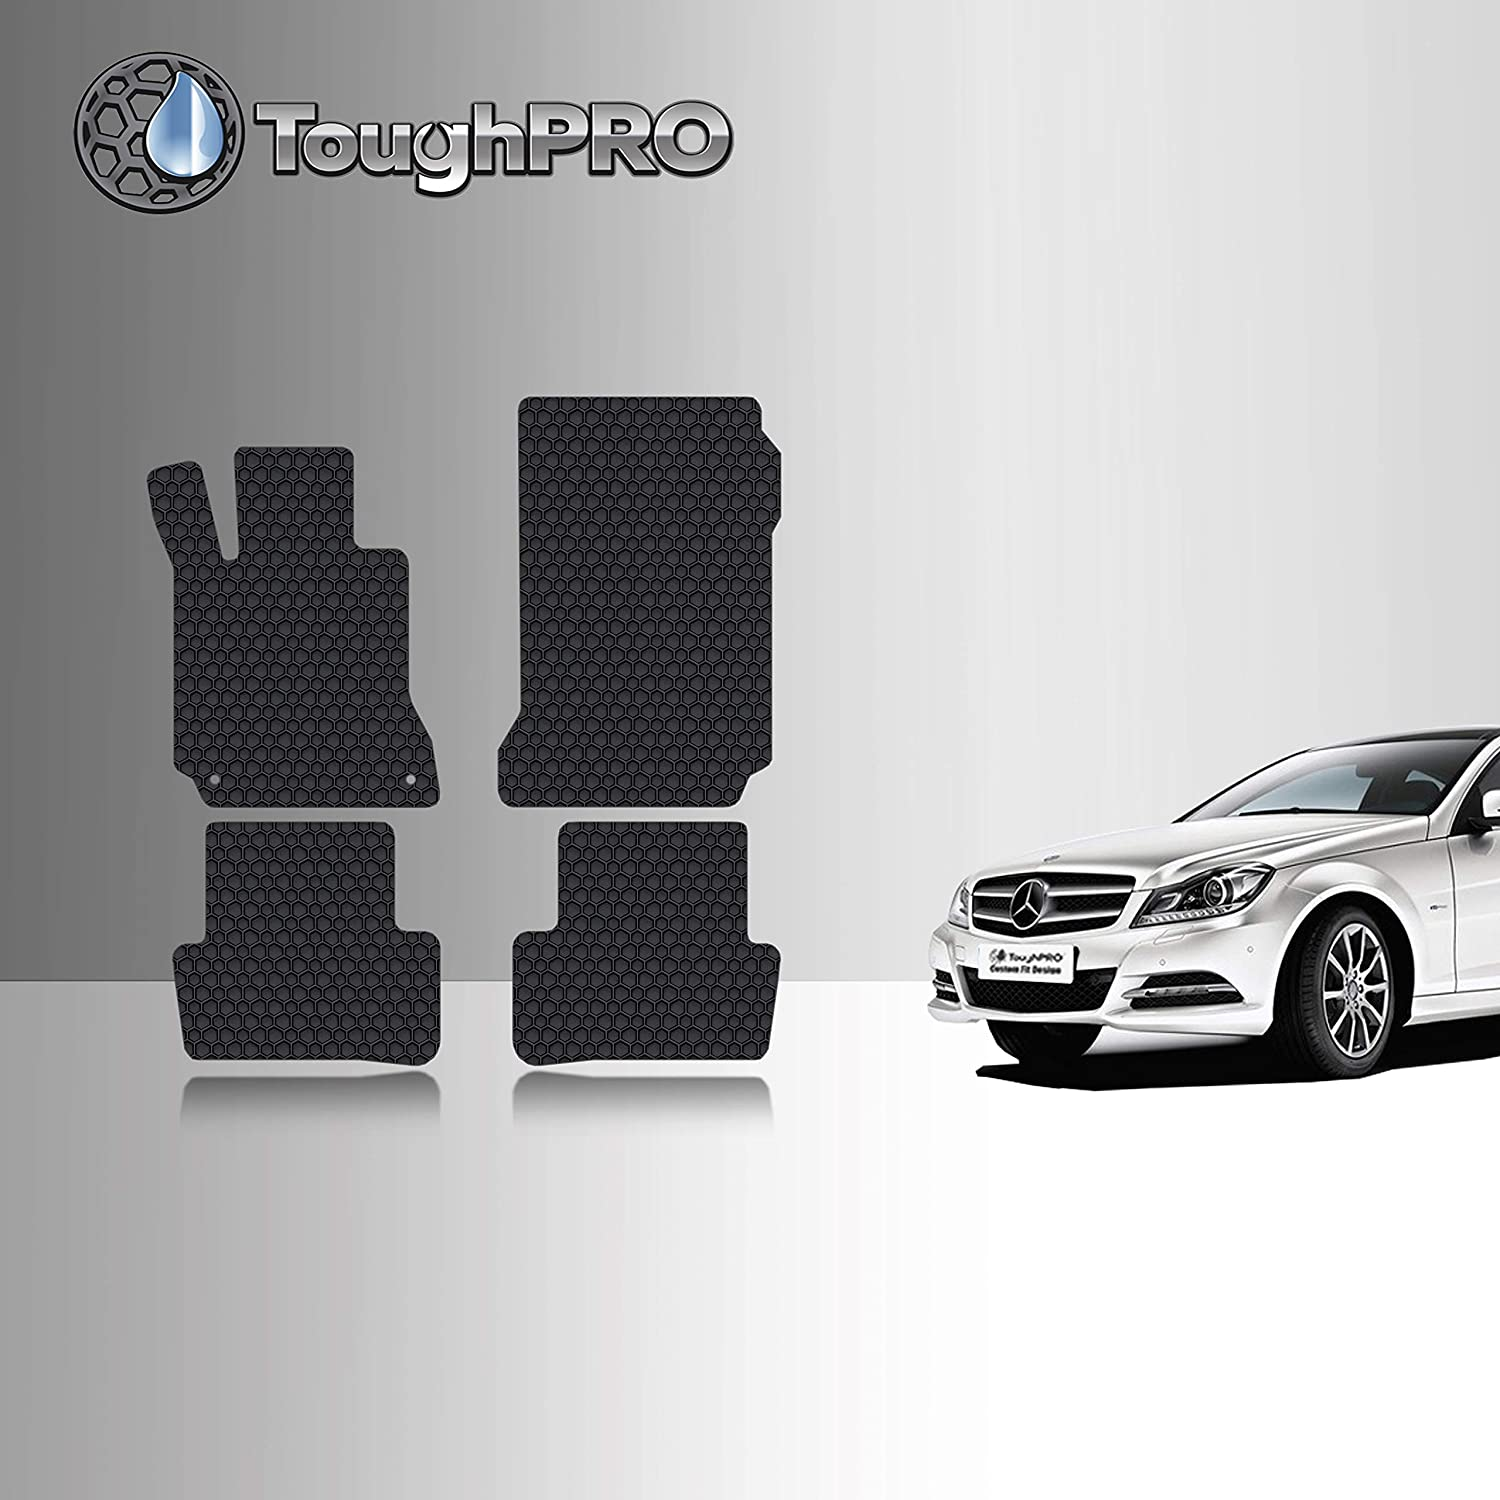 Front Row + 2nd Row Heavy Duty Sedan Compatible with Mercedes-Benz C Class 2012 2011 2010 TOUGHPRO Floor Mat Accessories Set 2008 2009 Black Rubber 2013 - All Weather 2014